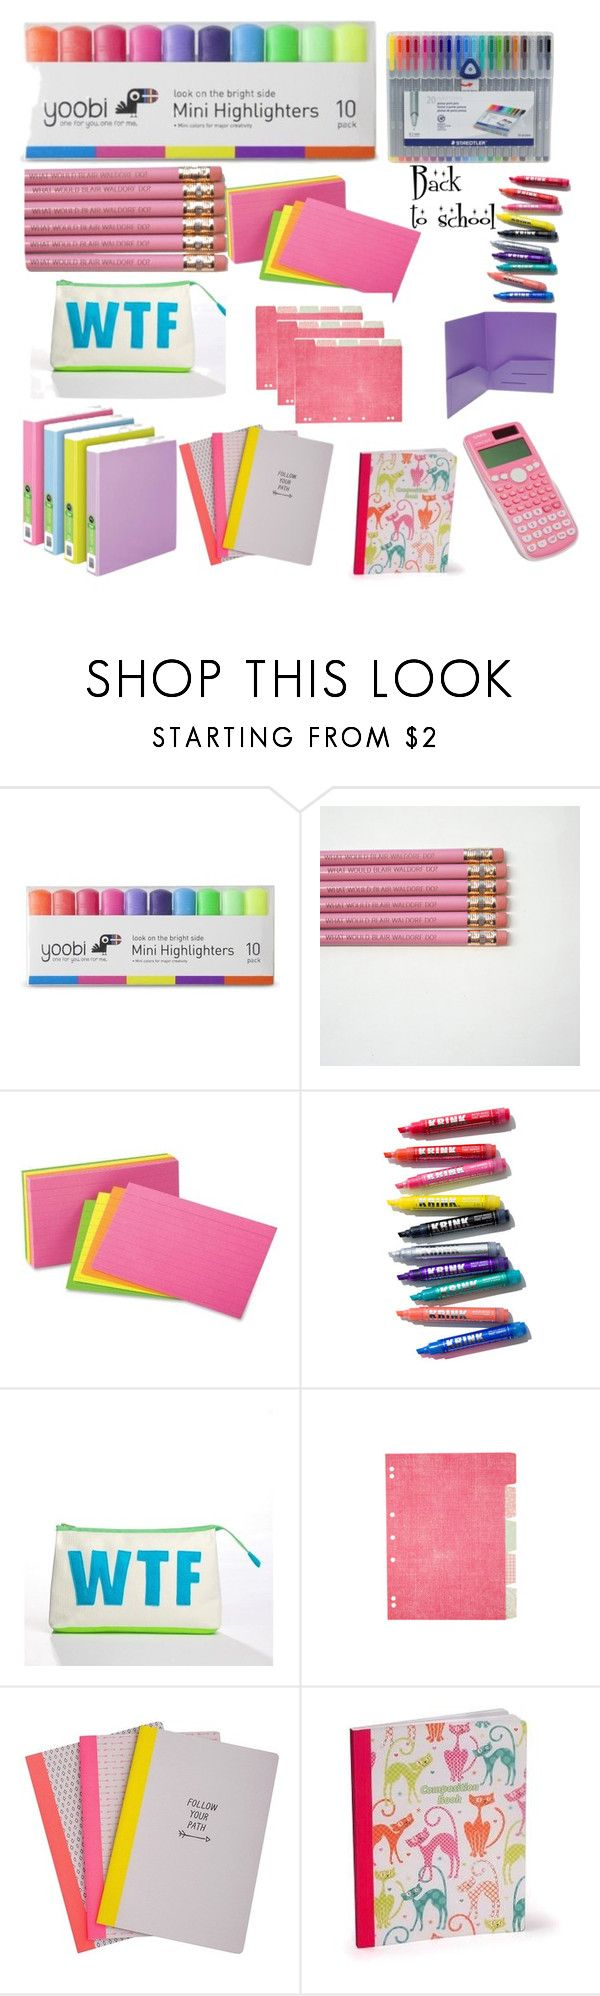 """School supplies"" by kjulia240 ❤ liked on Polyvore featuring interior, interiors, interior design, home, home decor, interior decorating, Yoobi, Alexandra Ferguson and Casio"